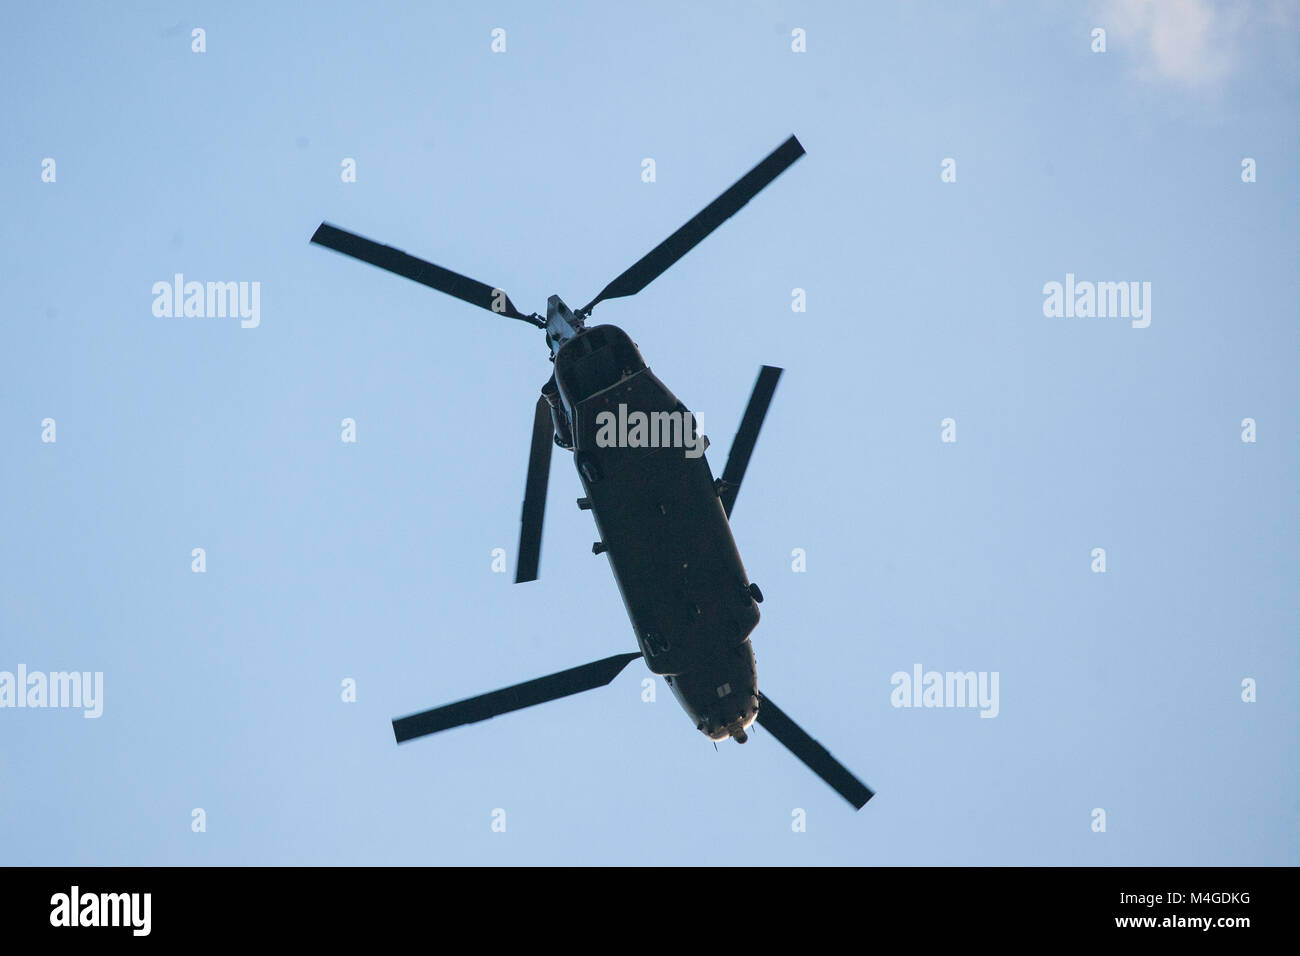 London, UK. 30th January, 2018. A Royal Air Force Boeing Chinook tandem rotor helicopter uses a heli-lane along - Stock Image